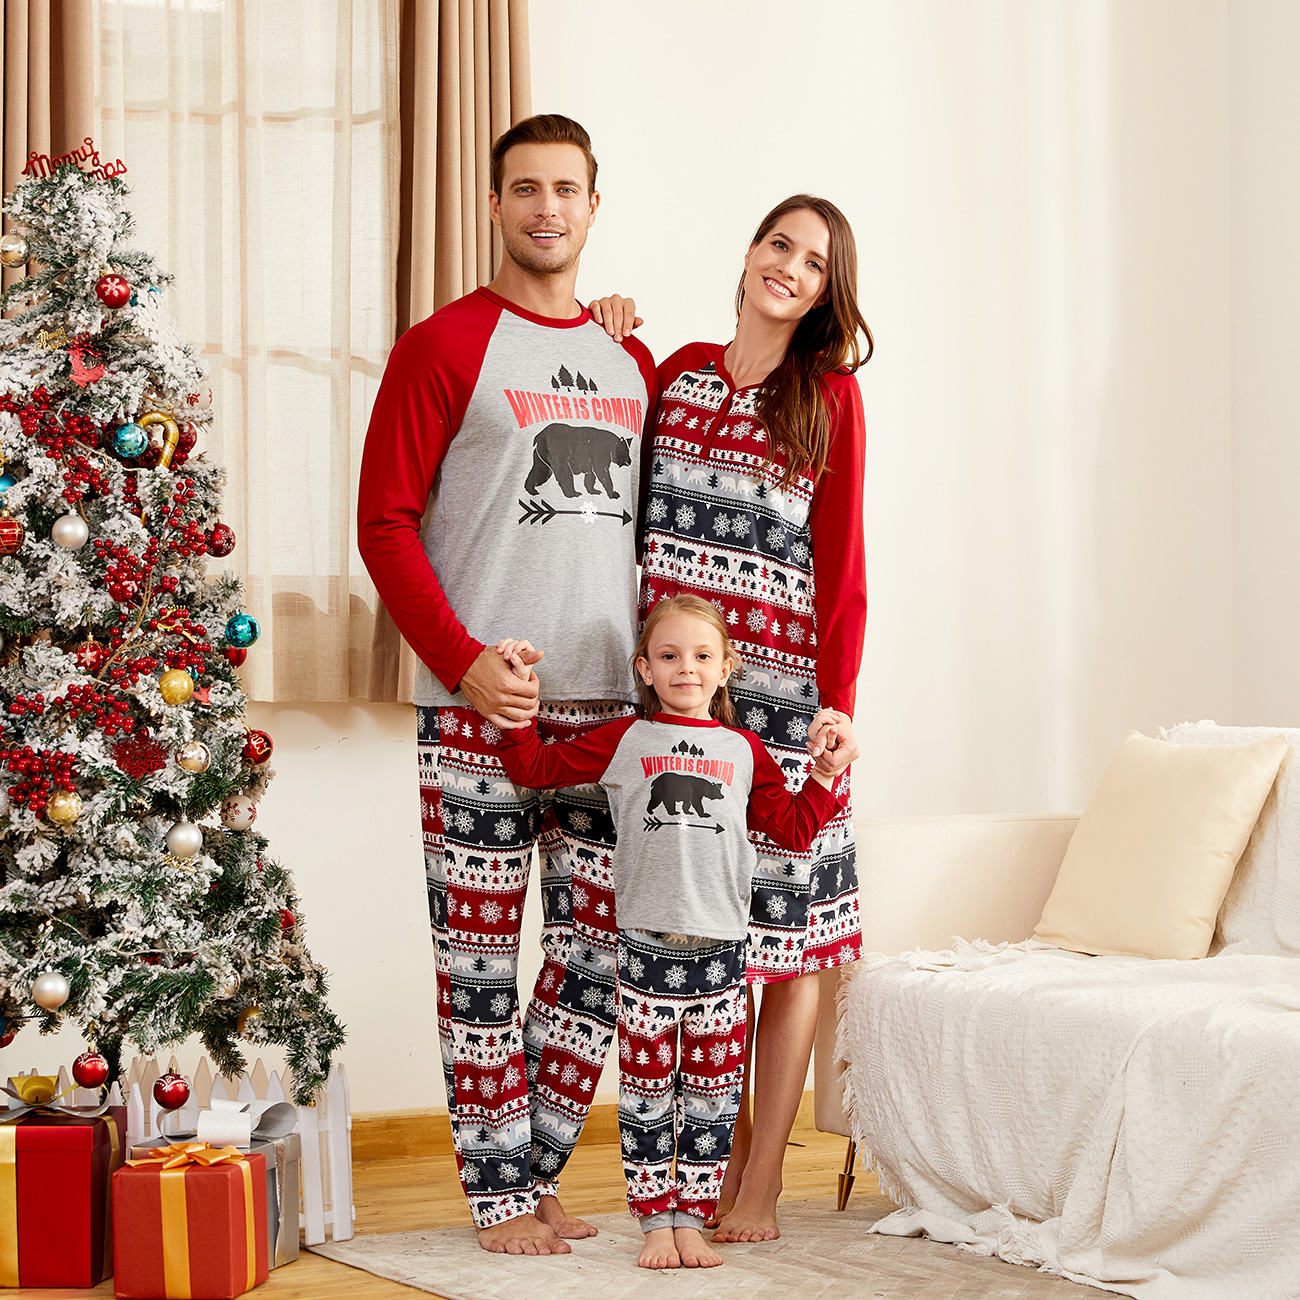 Mosaic Winter is Coming Family Matching Bear Top and Snowflake Pants Christmas Pajamas Set for Dad - Mom - Kid - Baby